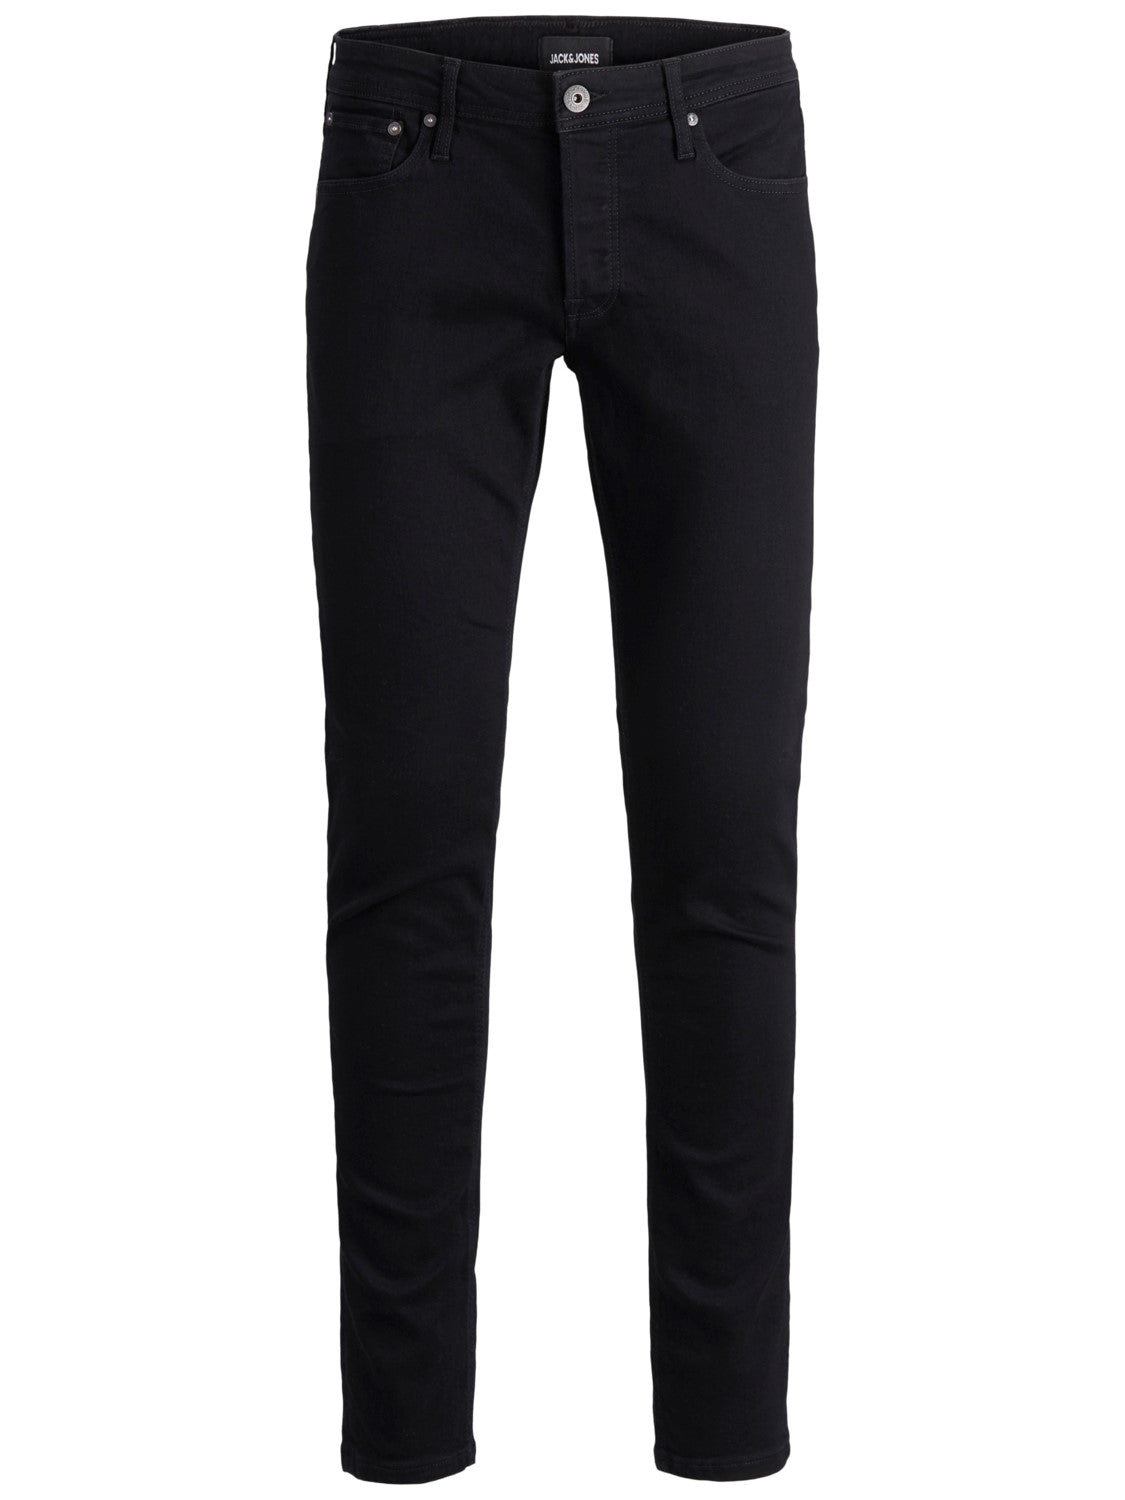 Jack & Jones Mens 'Glenn' Slim Fit Jeans-Main Image